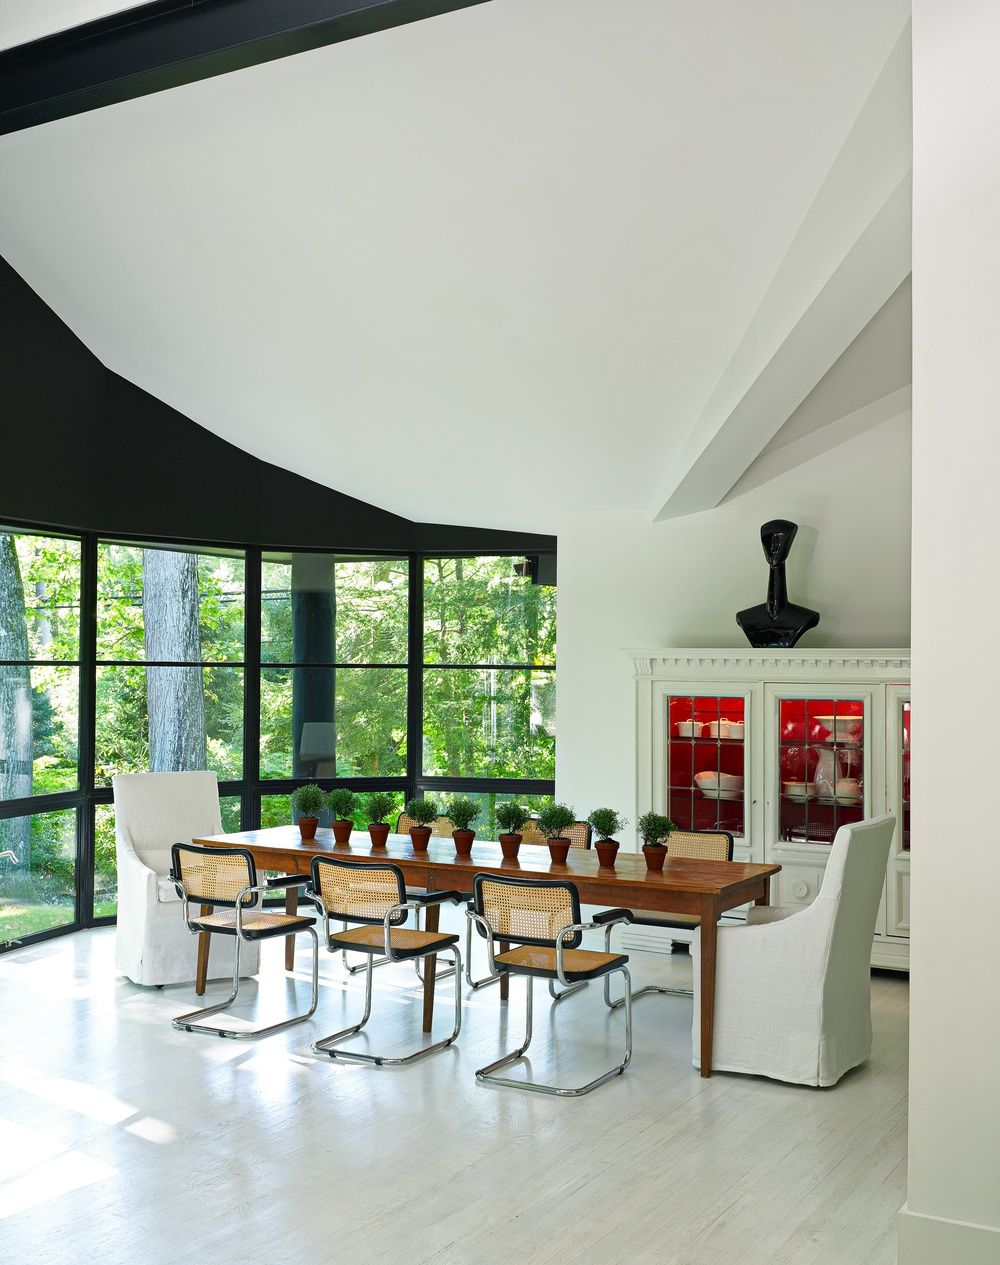 Patrick Mele Interior Design - Love these dining room chairs